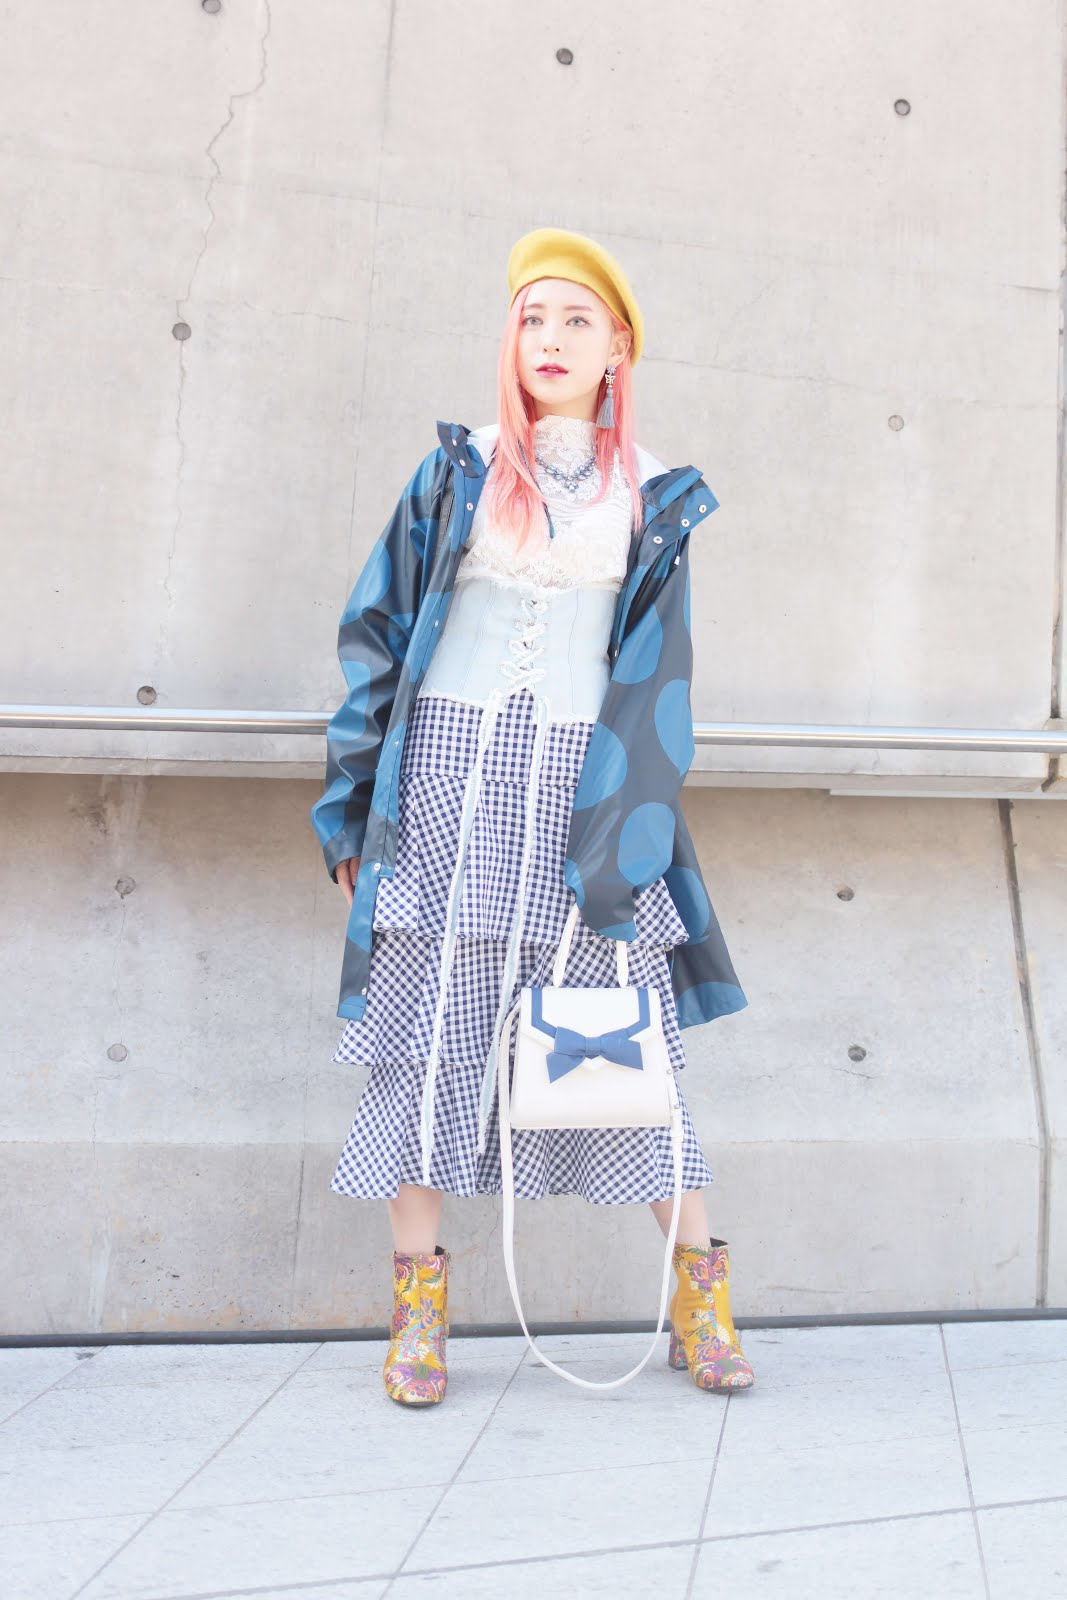 seoul fashion week streetstyle maximalist fashion